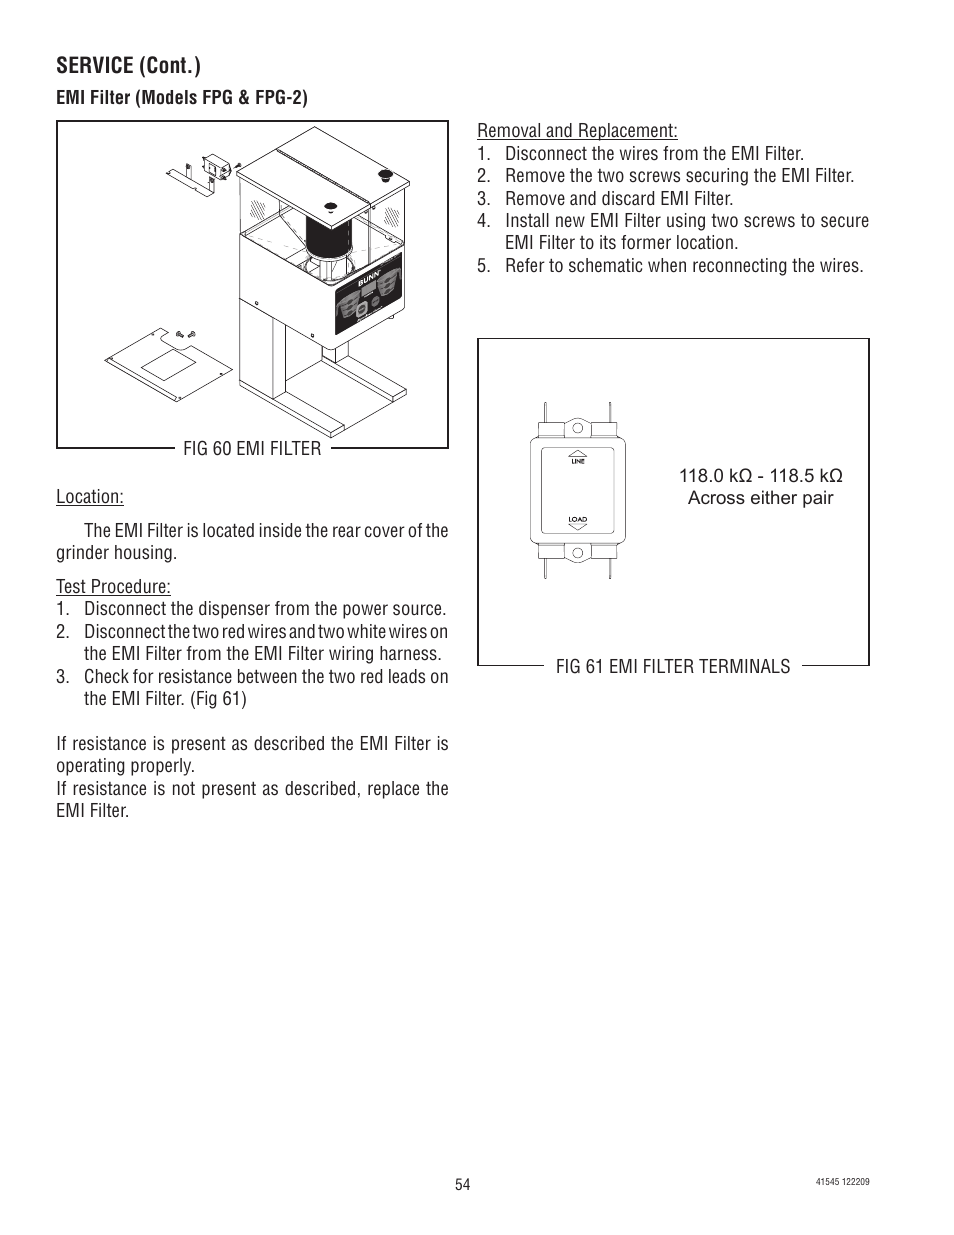 Service Cont Bunn G92t Dbc User Manual Page 54 79. Bunn G92t Dbc User Manual Page 54. Wiring. 5 3 Dbc Wiring Diagram At Scoala.co